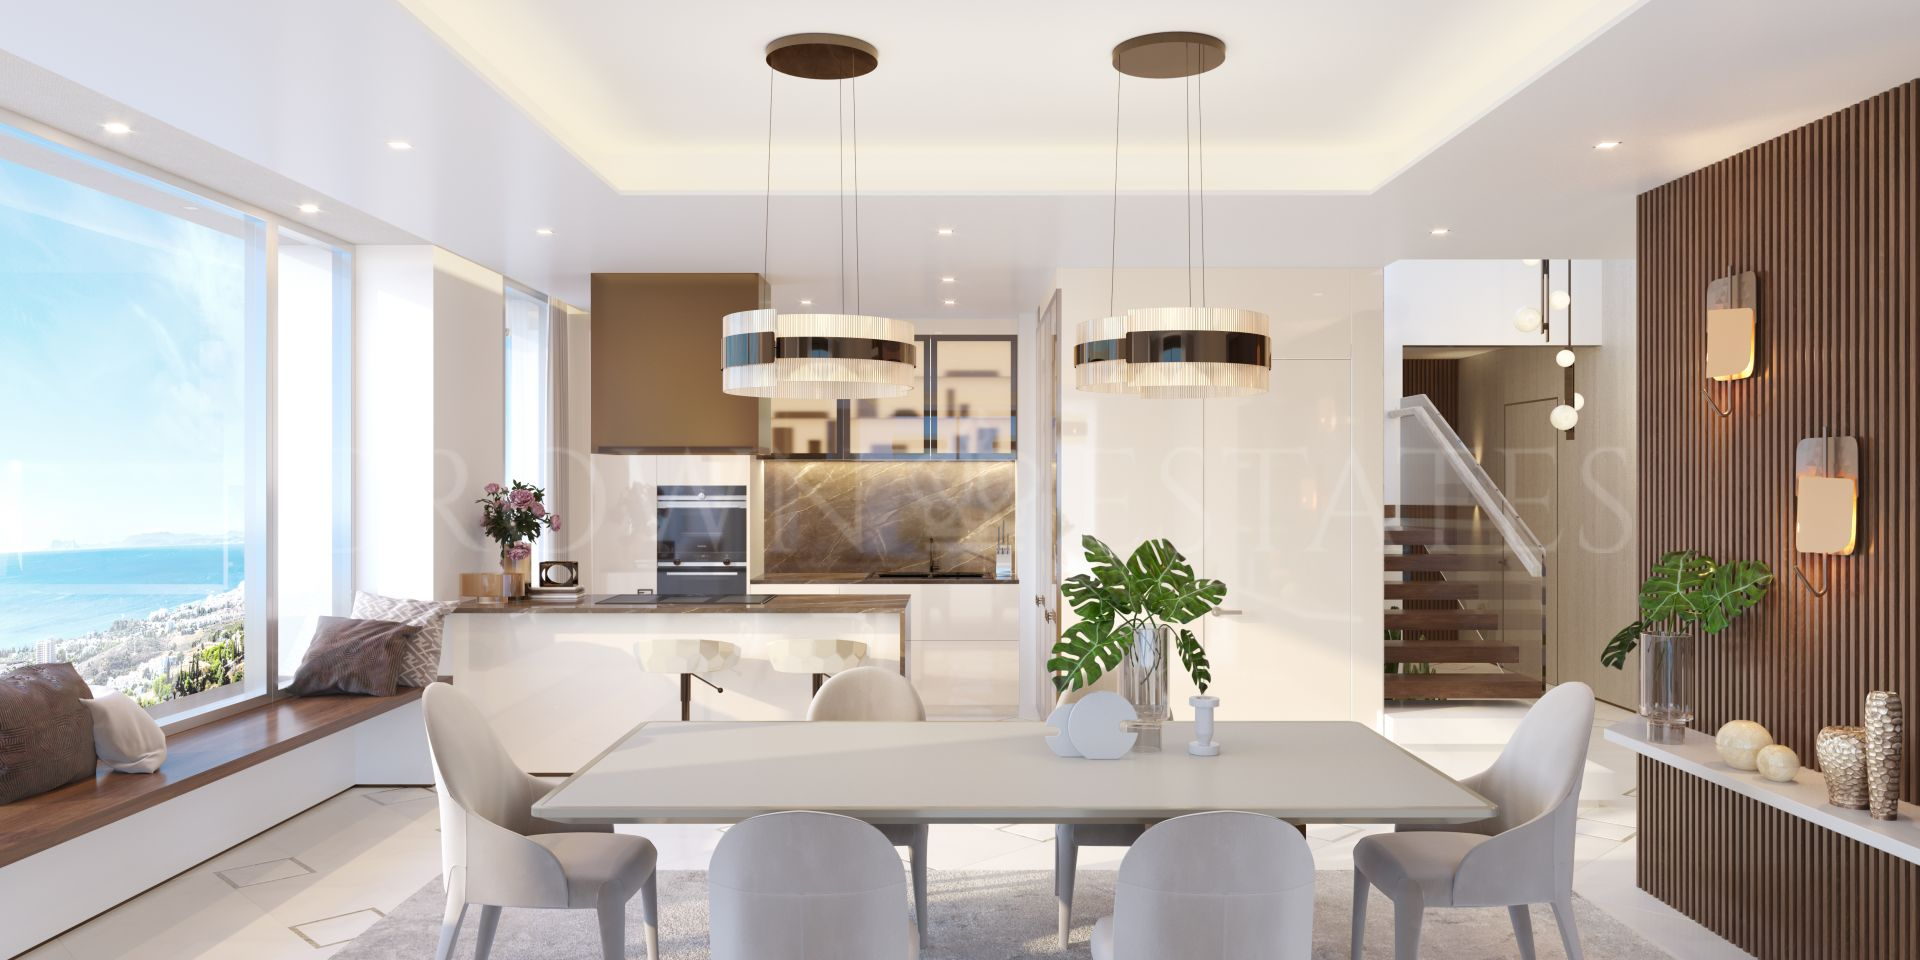 New Penthouses and Apartments in the Heart of Marbella's Golden Mile